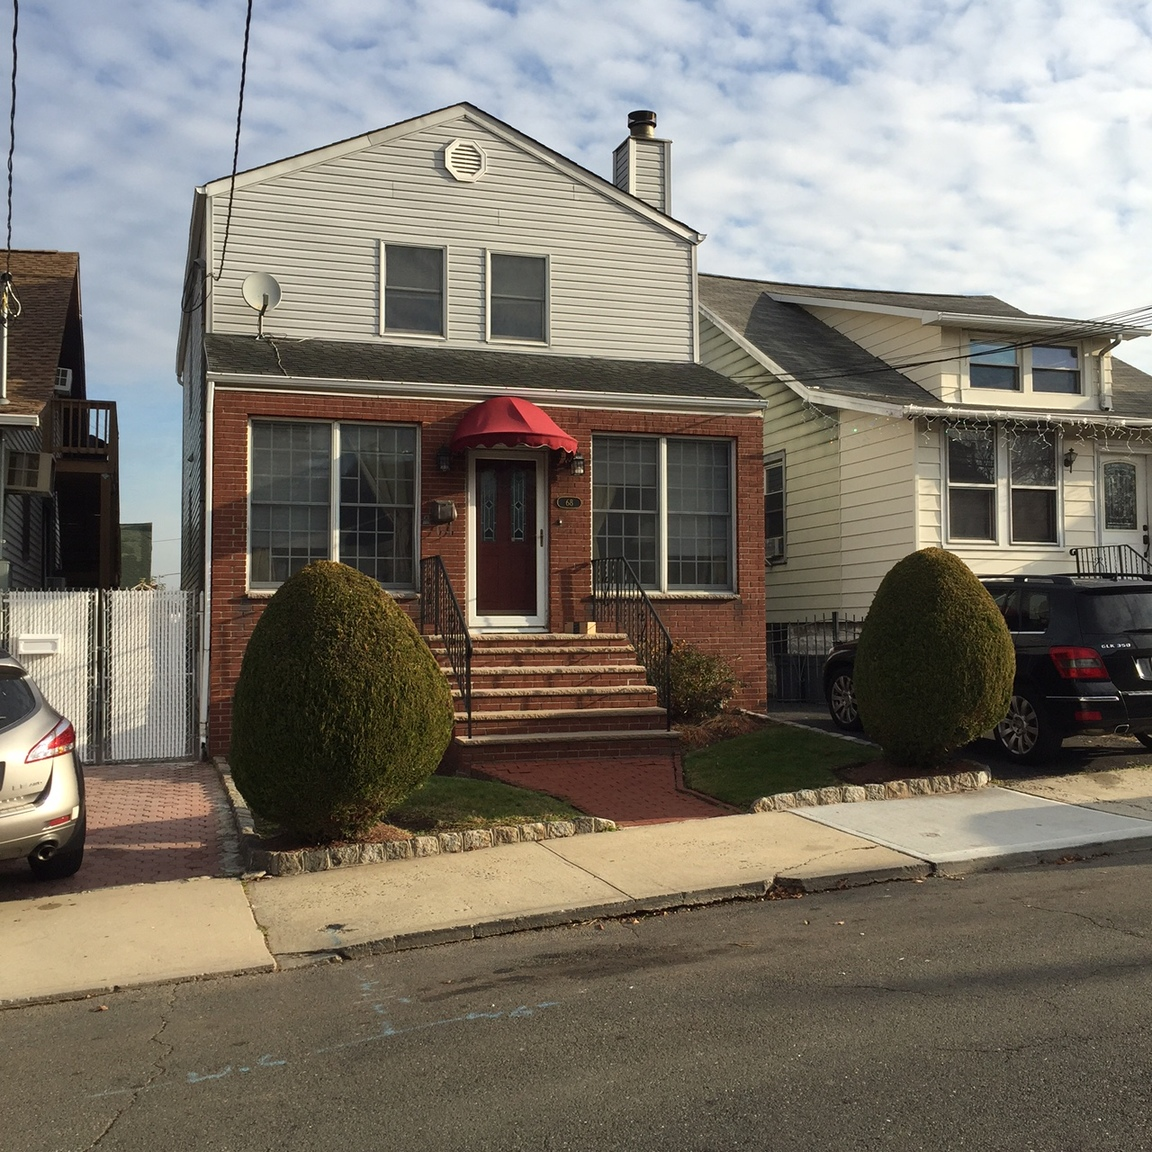 Homes For Rent: Homes For Rent In Secaucus, NJ